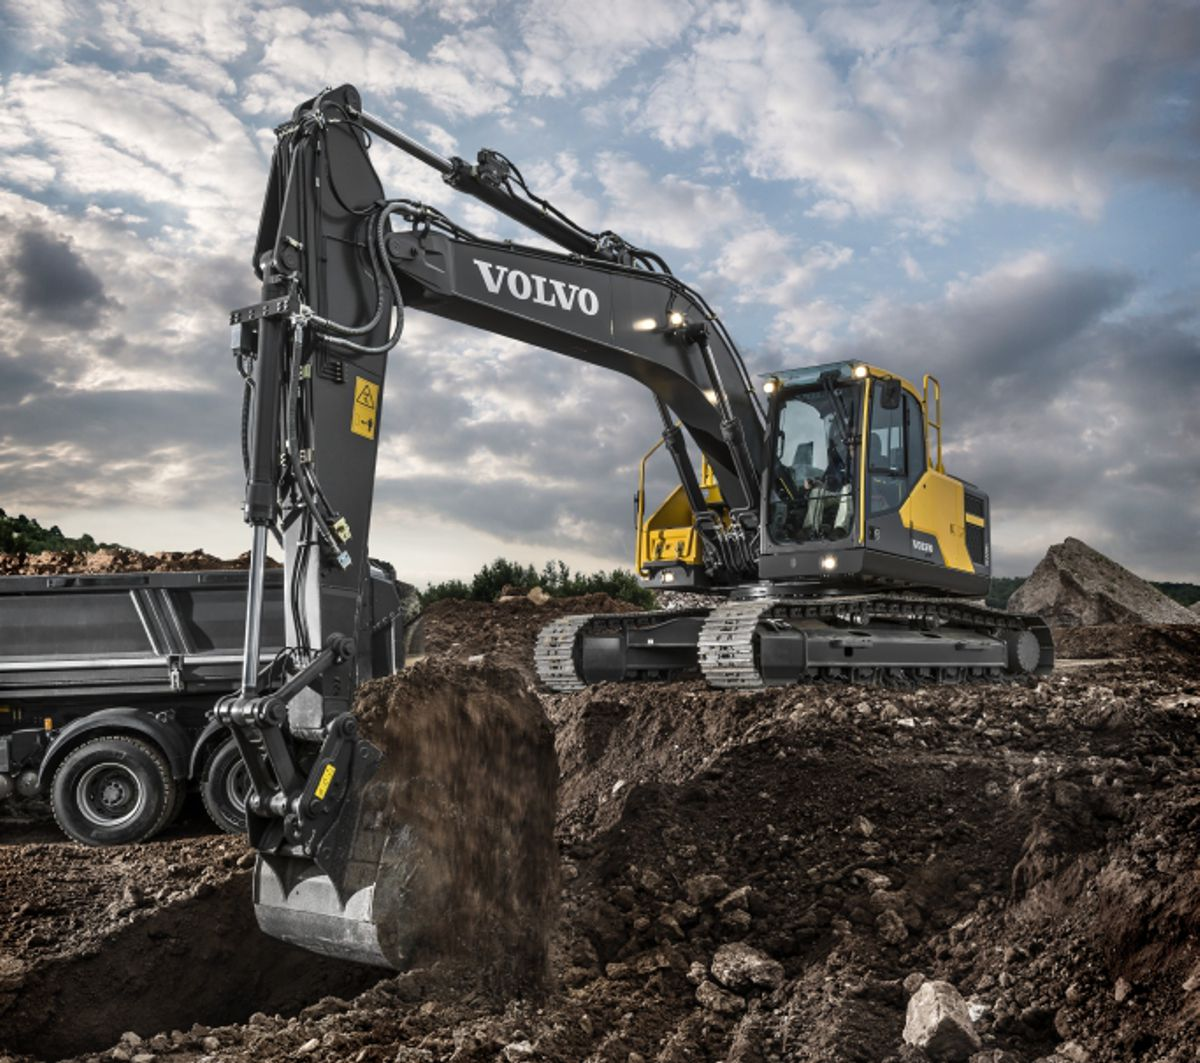 Euro IV compliant Construction Machines featured at bauma China